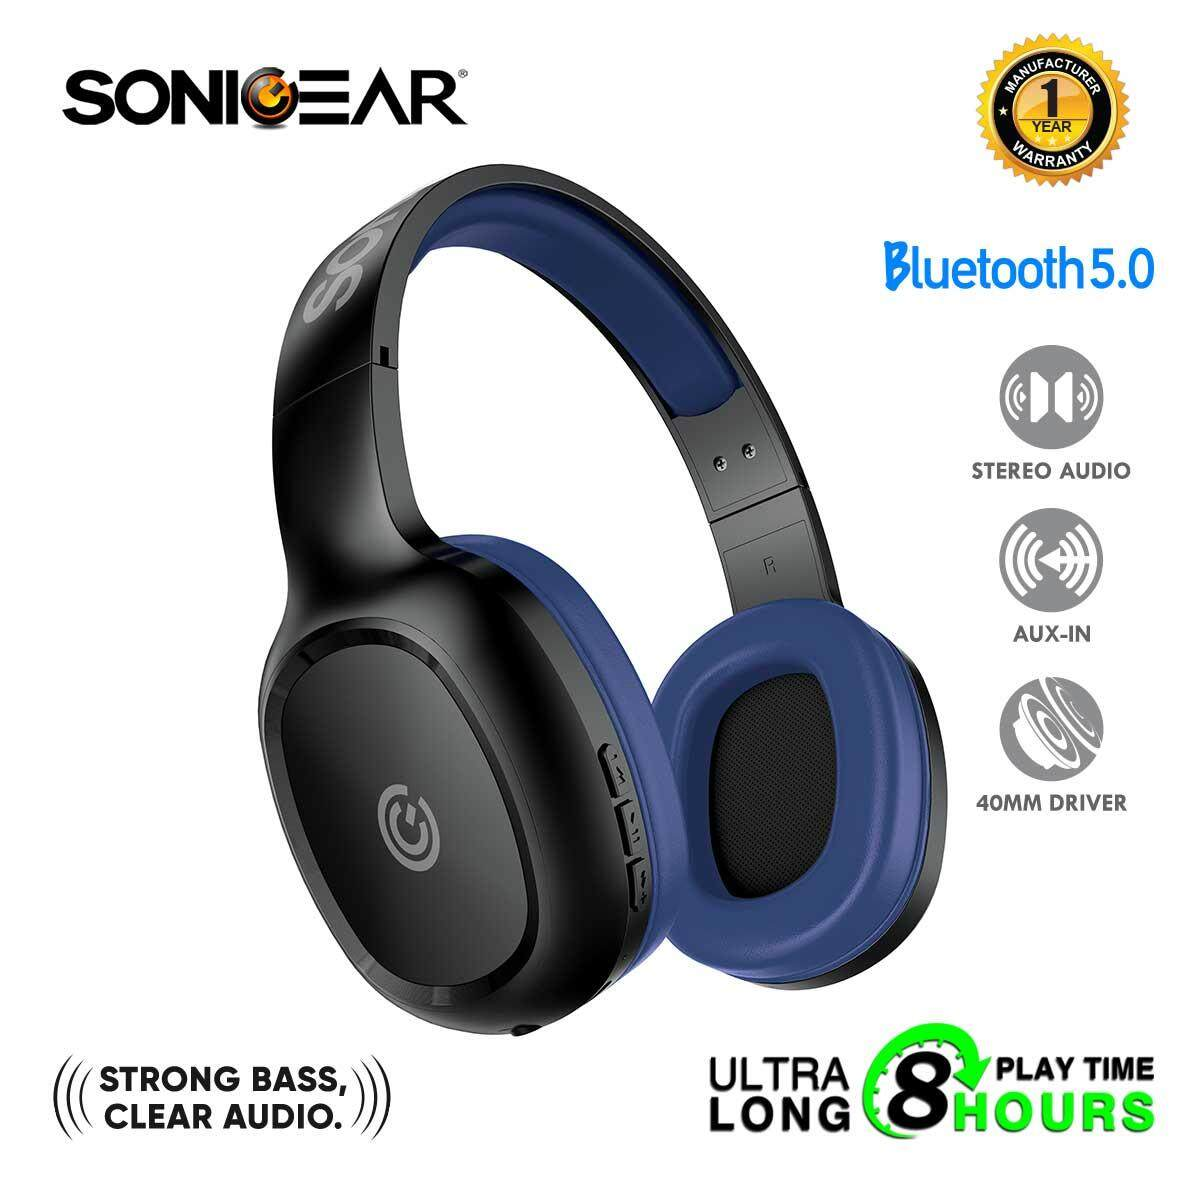 SonicGear AirPhone 3 Bluetooth Headphones With Mic For Smartphones and Tablets